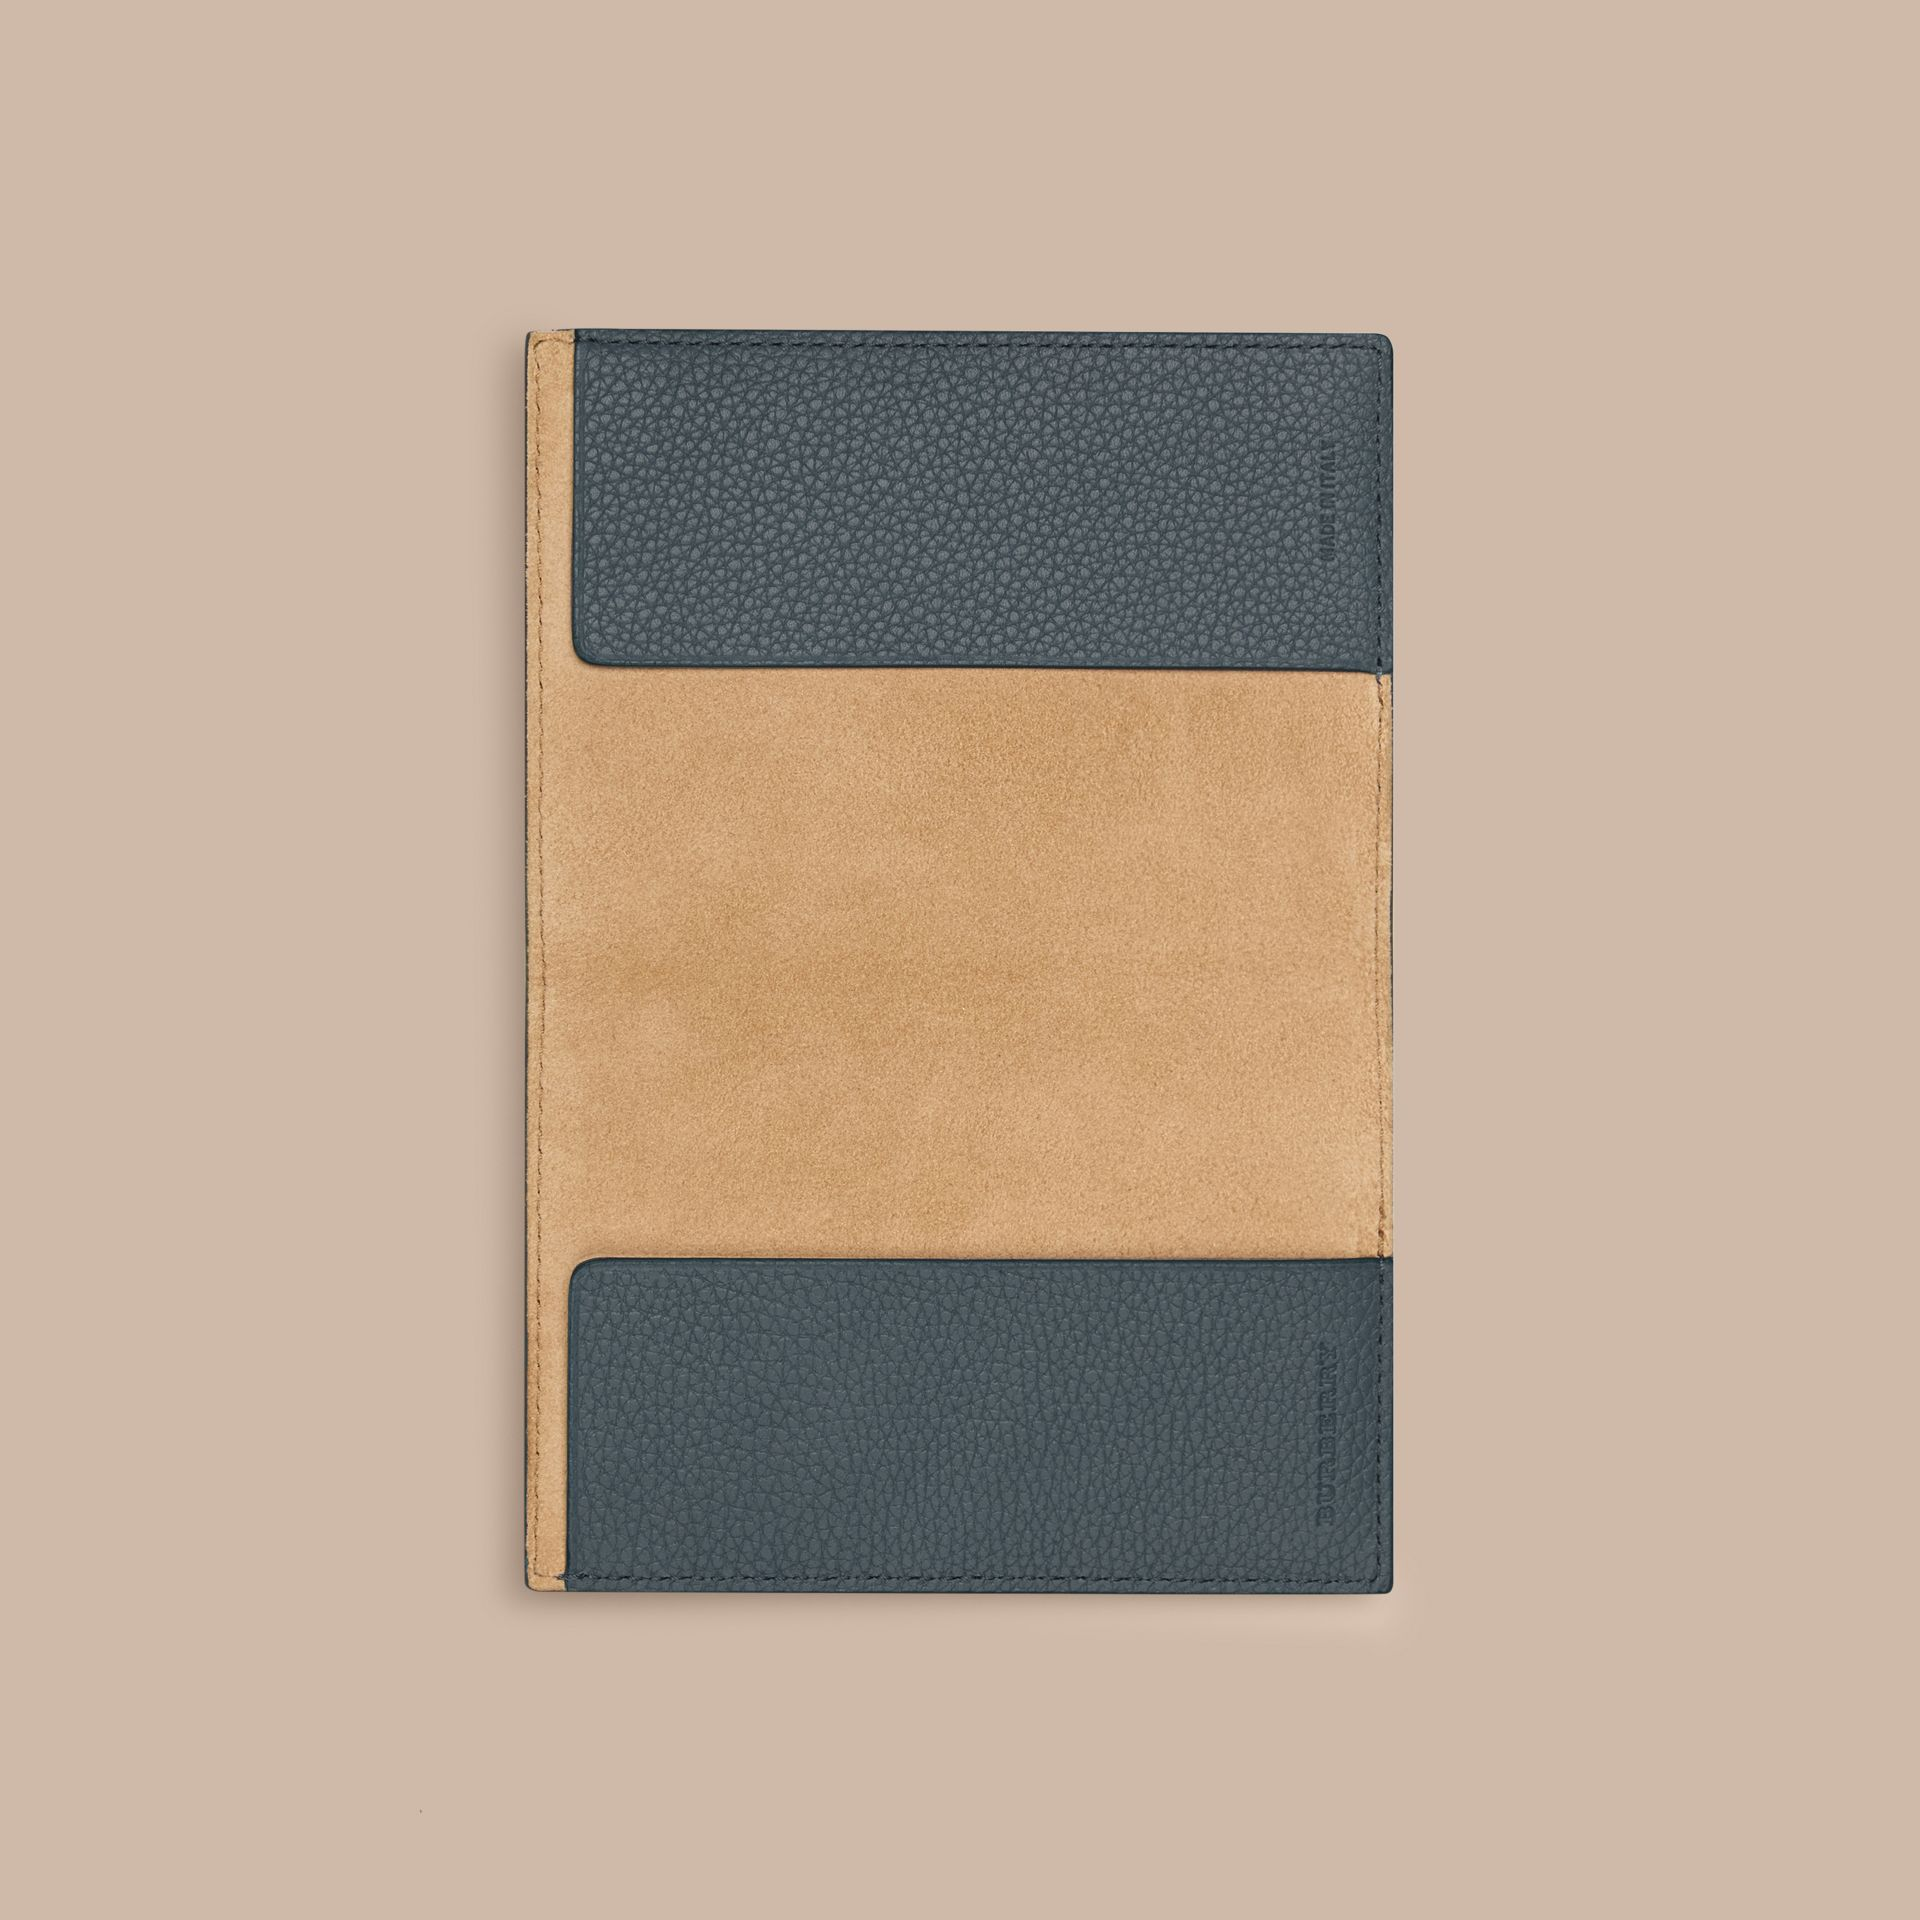 Dusty teal Grainy Leather Passport Cover Dusty Teal - gallery image 2